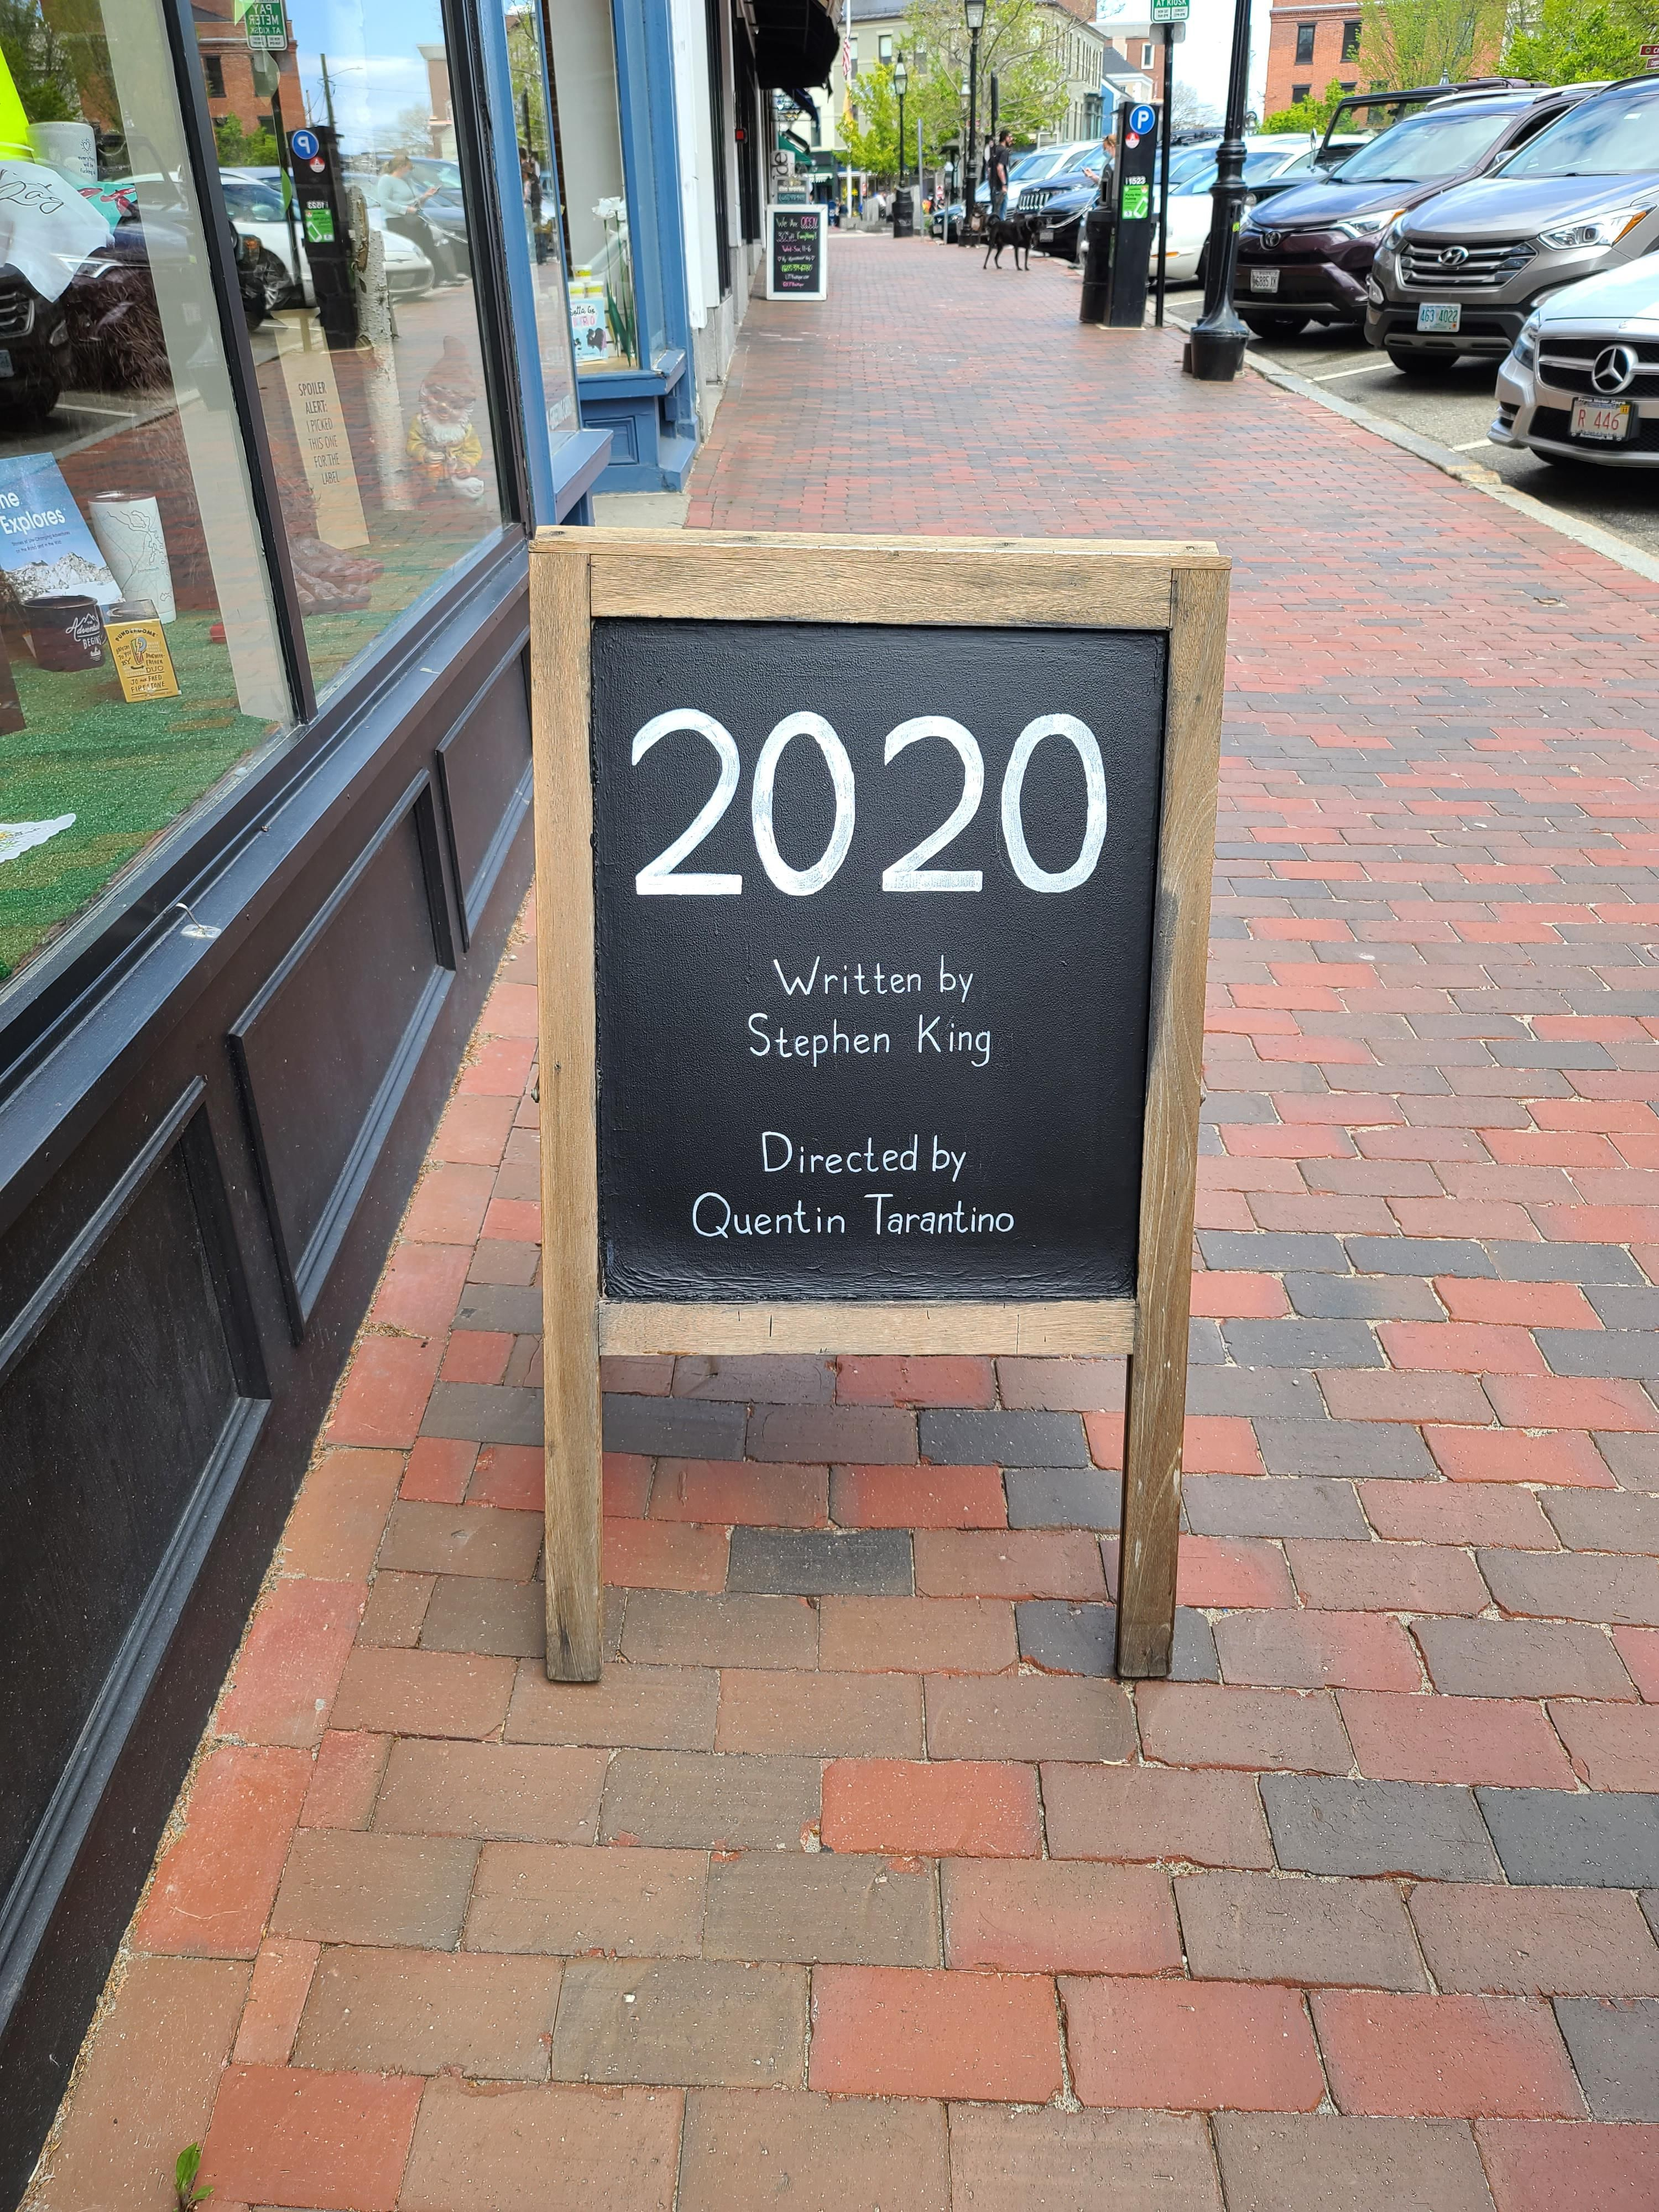 I saw this infront of a restaurant in Portsmouth NH, they're right